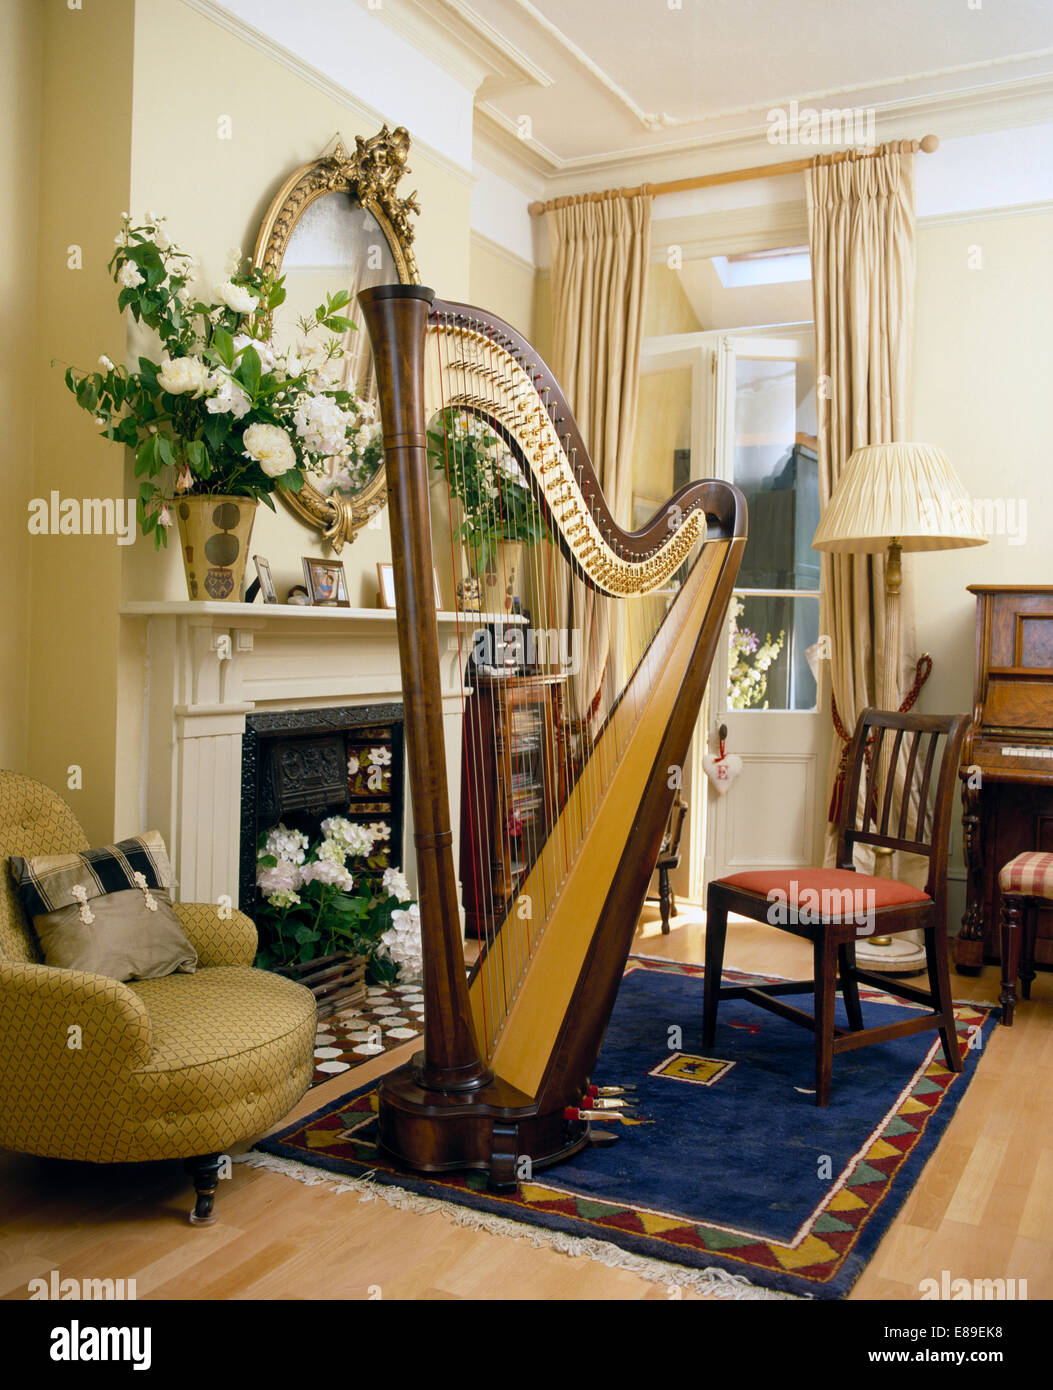 Large Harp On Blue Rug In Front Of Fireplace With Vase Of White .